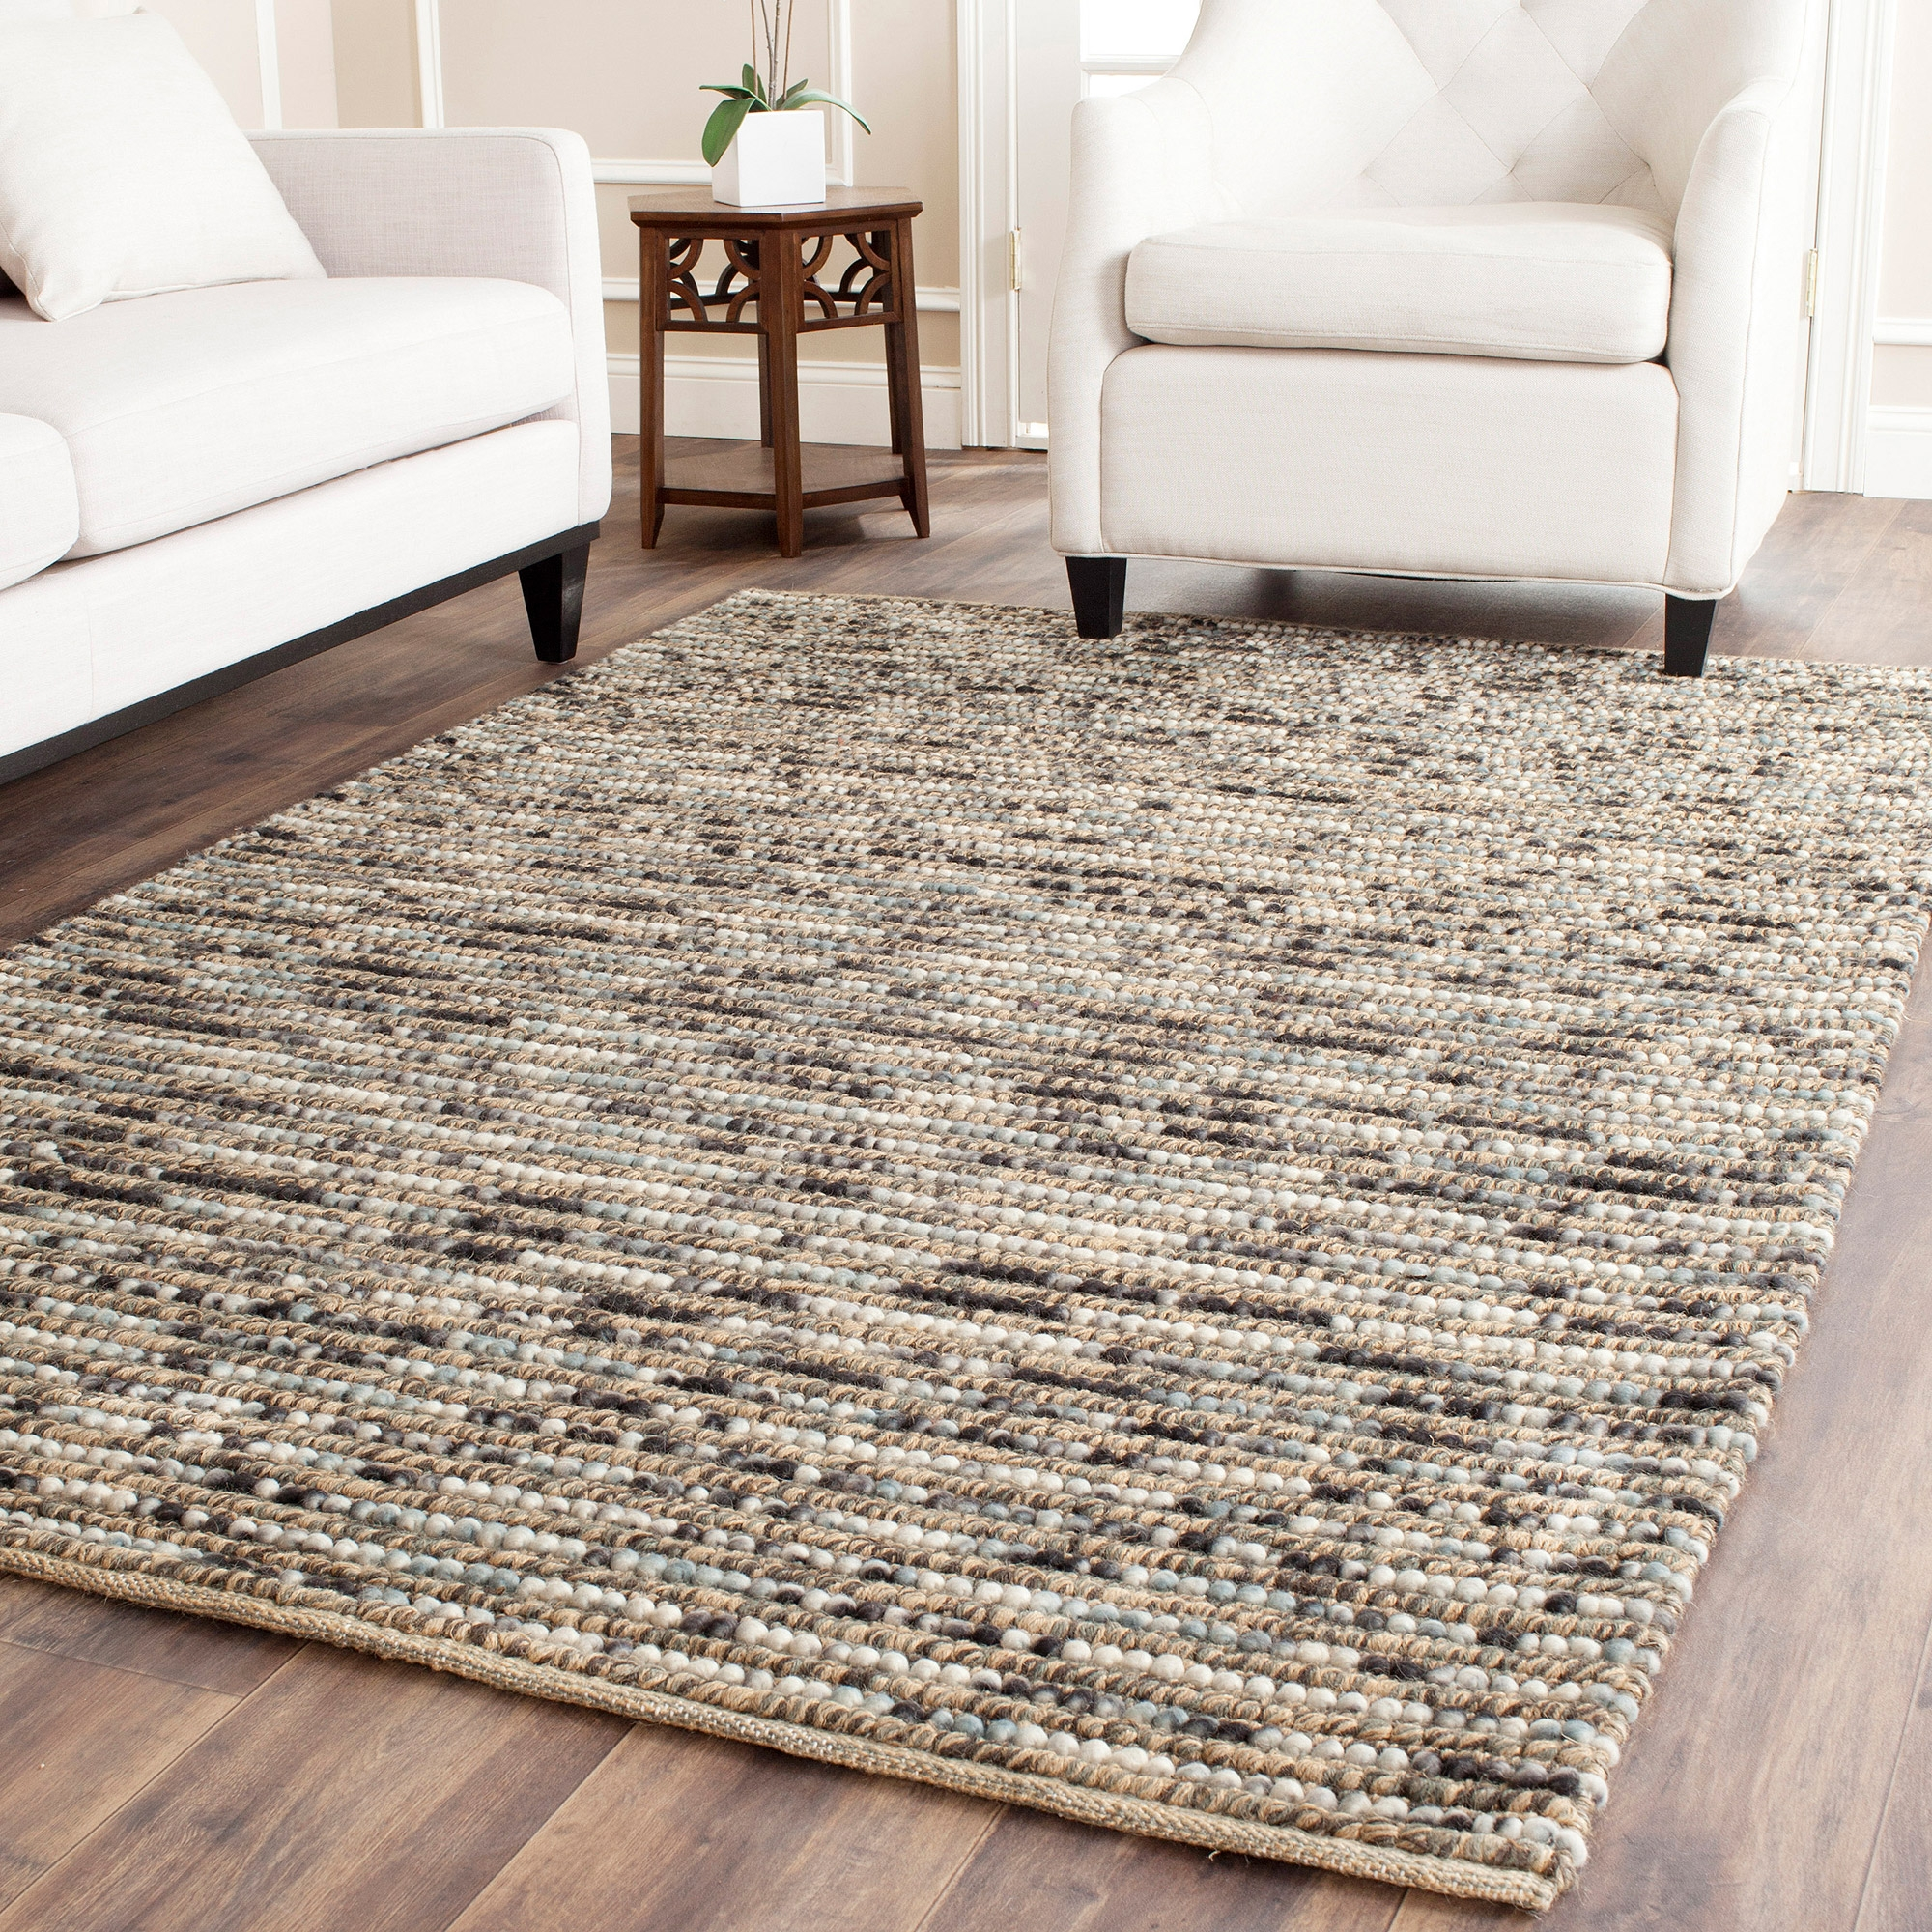 Popular Photo of Wool Jute Area Rugs